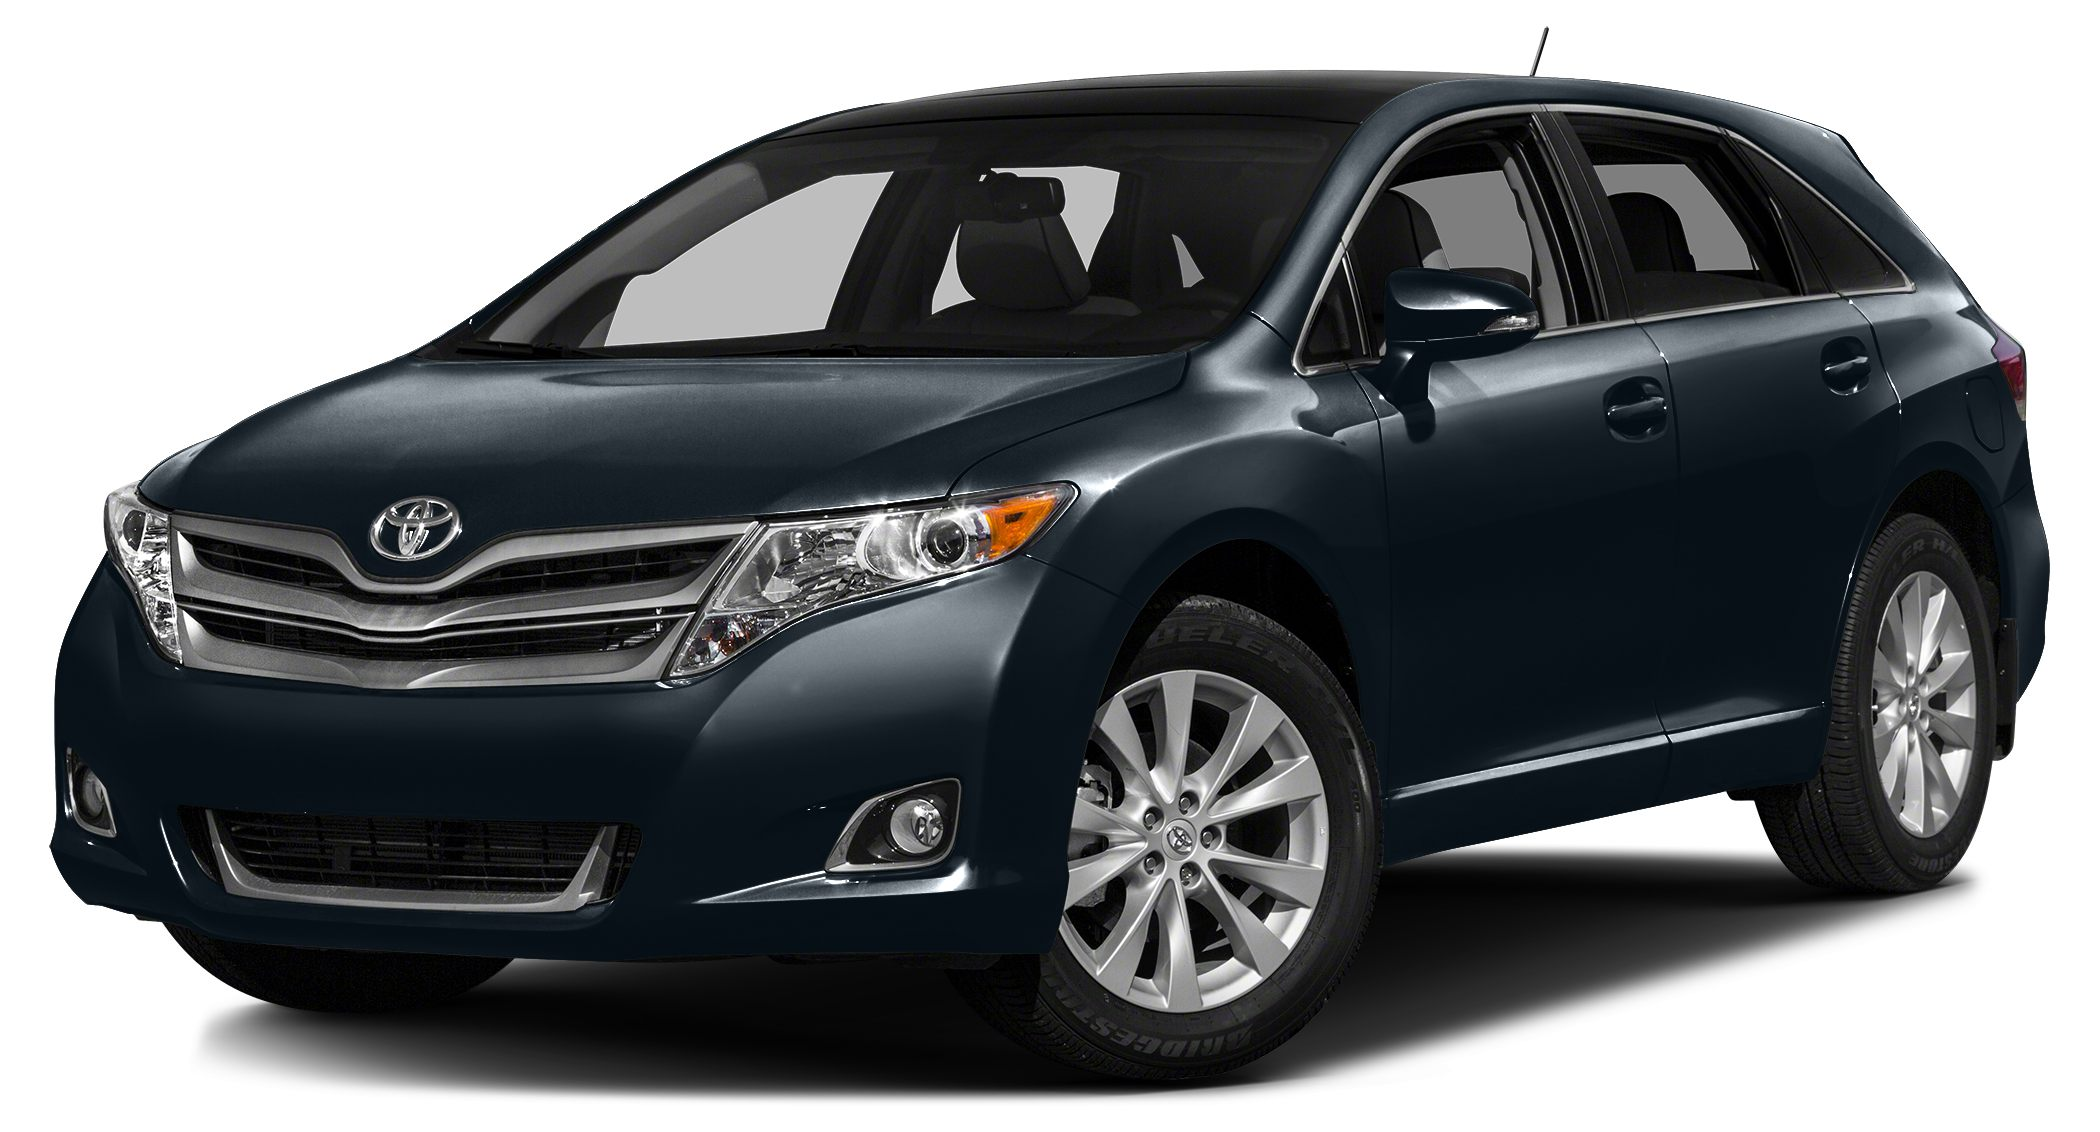 2013 Toyota Venza LE FUEL EFFICIENT 26 MPG Hwy20 MPG City Toyota Certified CARFAX 1-Owner GREAT